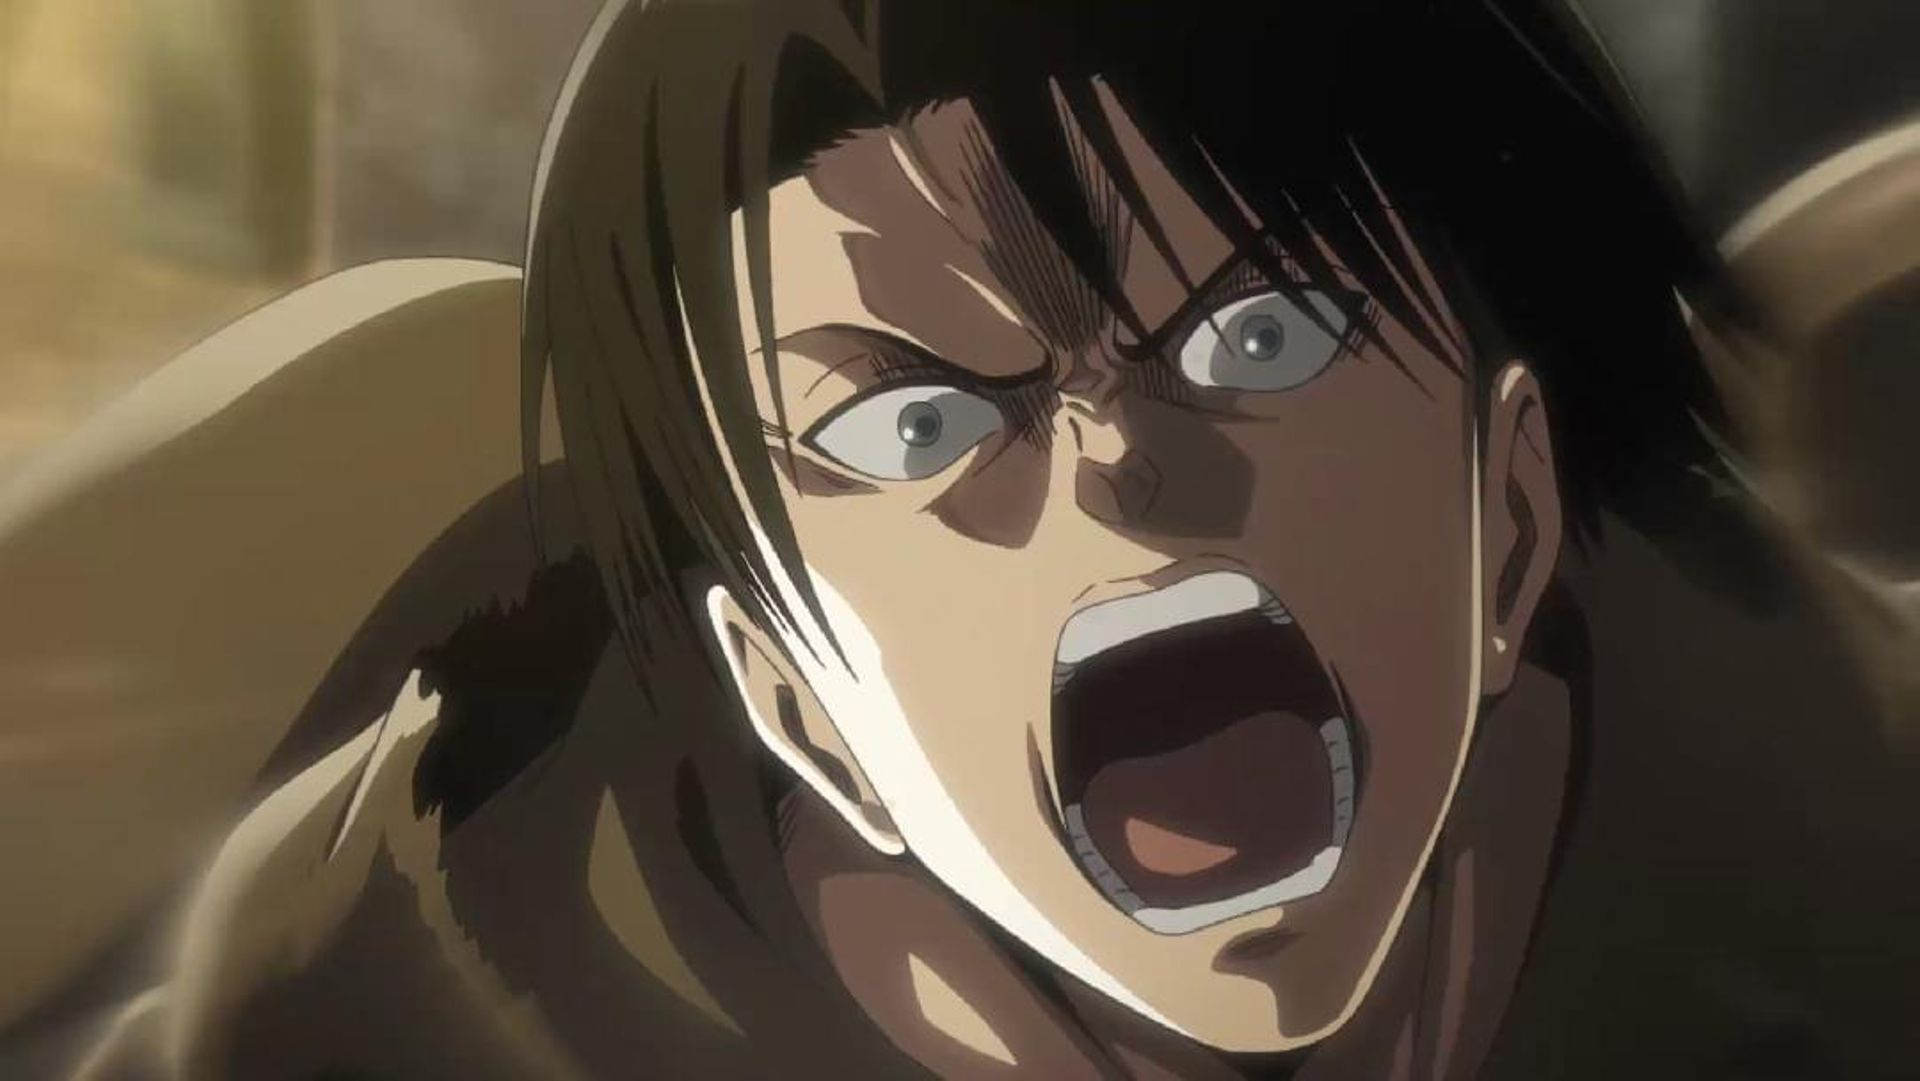 Attack on Titan - Attack on Titan Season 3 Promo